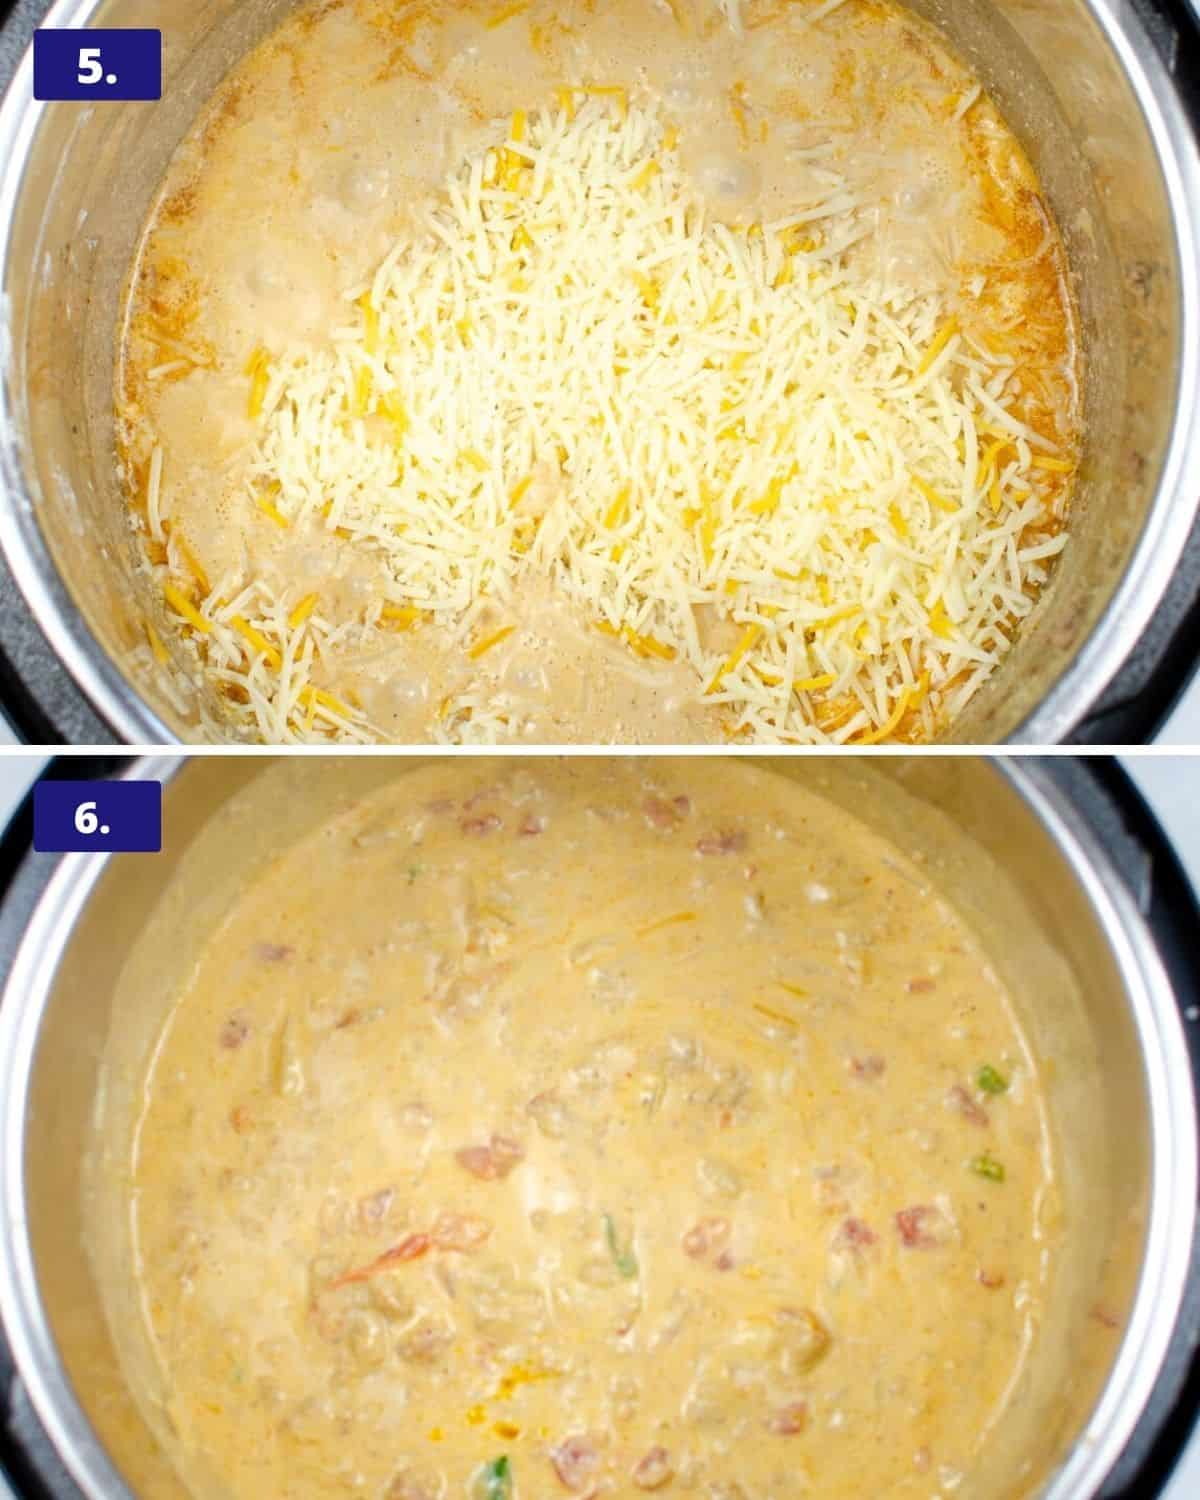 two photos of the instant pot, the first one is a pot of queso with shredded cheese on top. The second photo is the cheese melted.